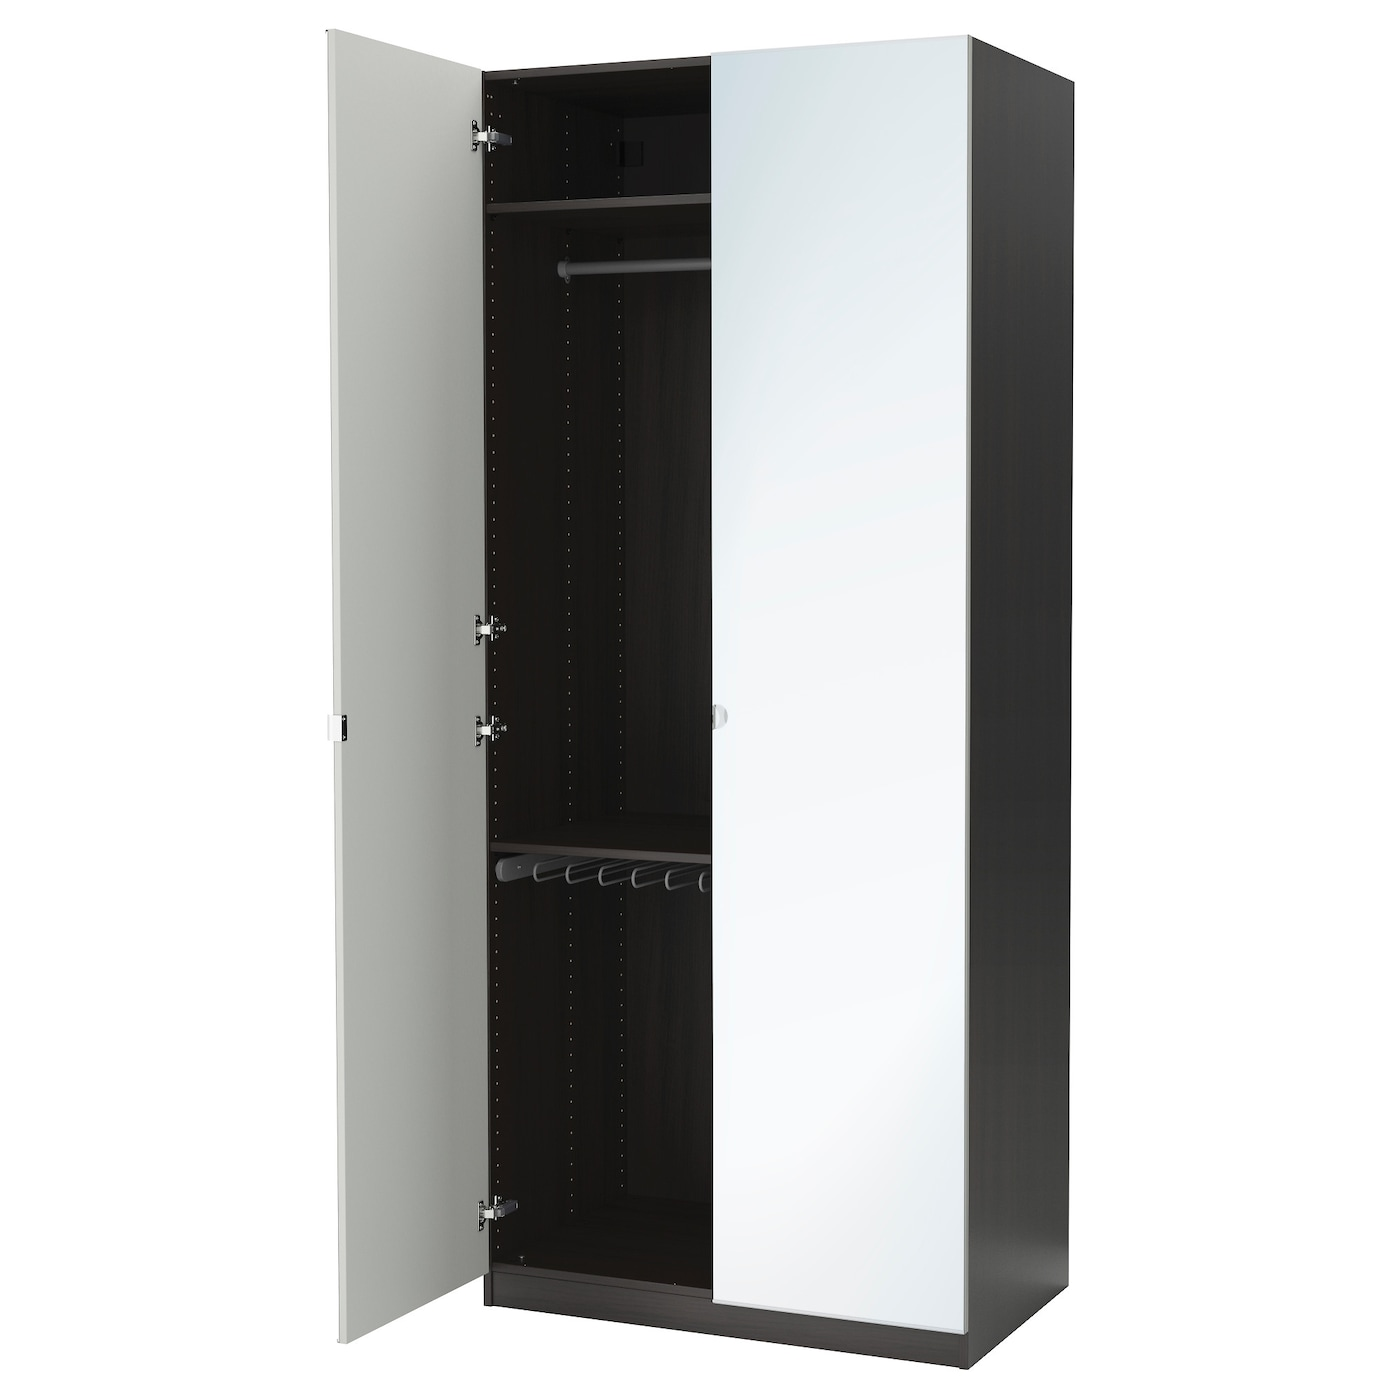 Pax wardrobe black brown vikedal mirror glass 100x60x236 for Porte miroir ikea